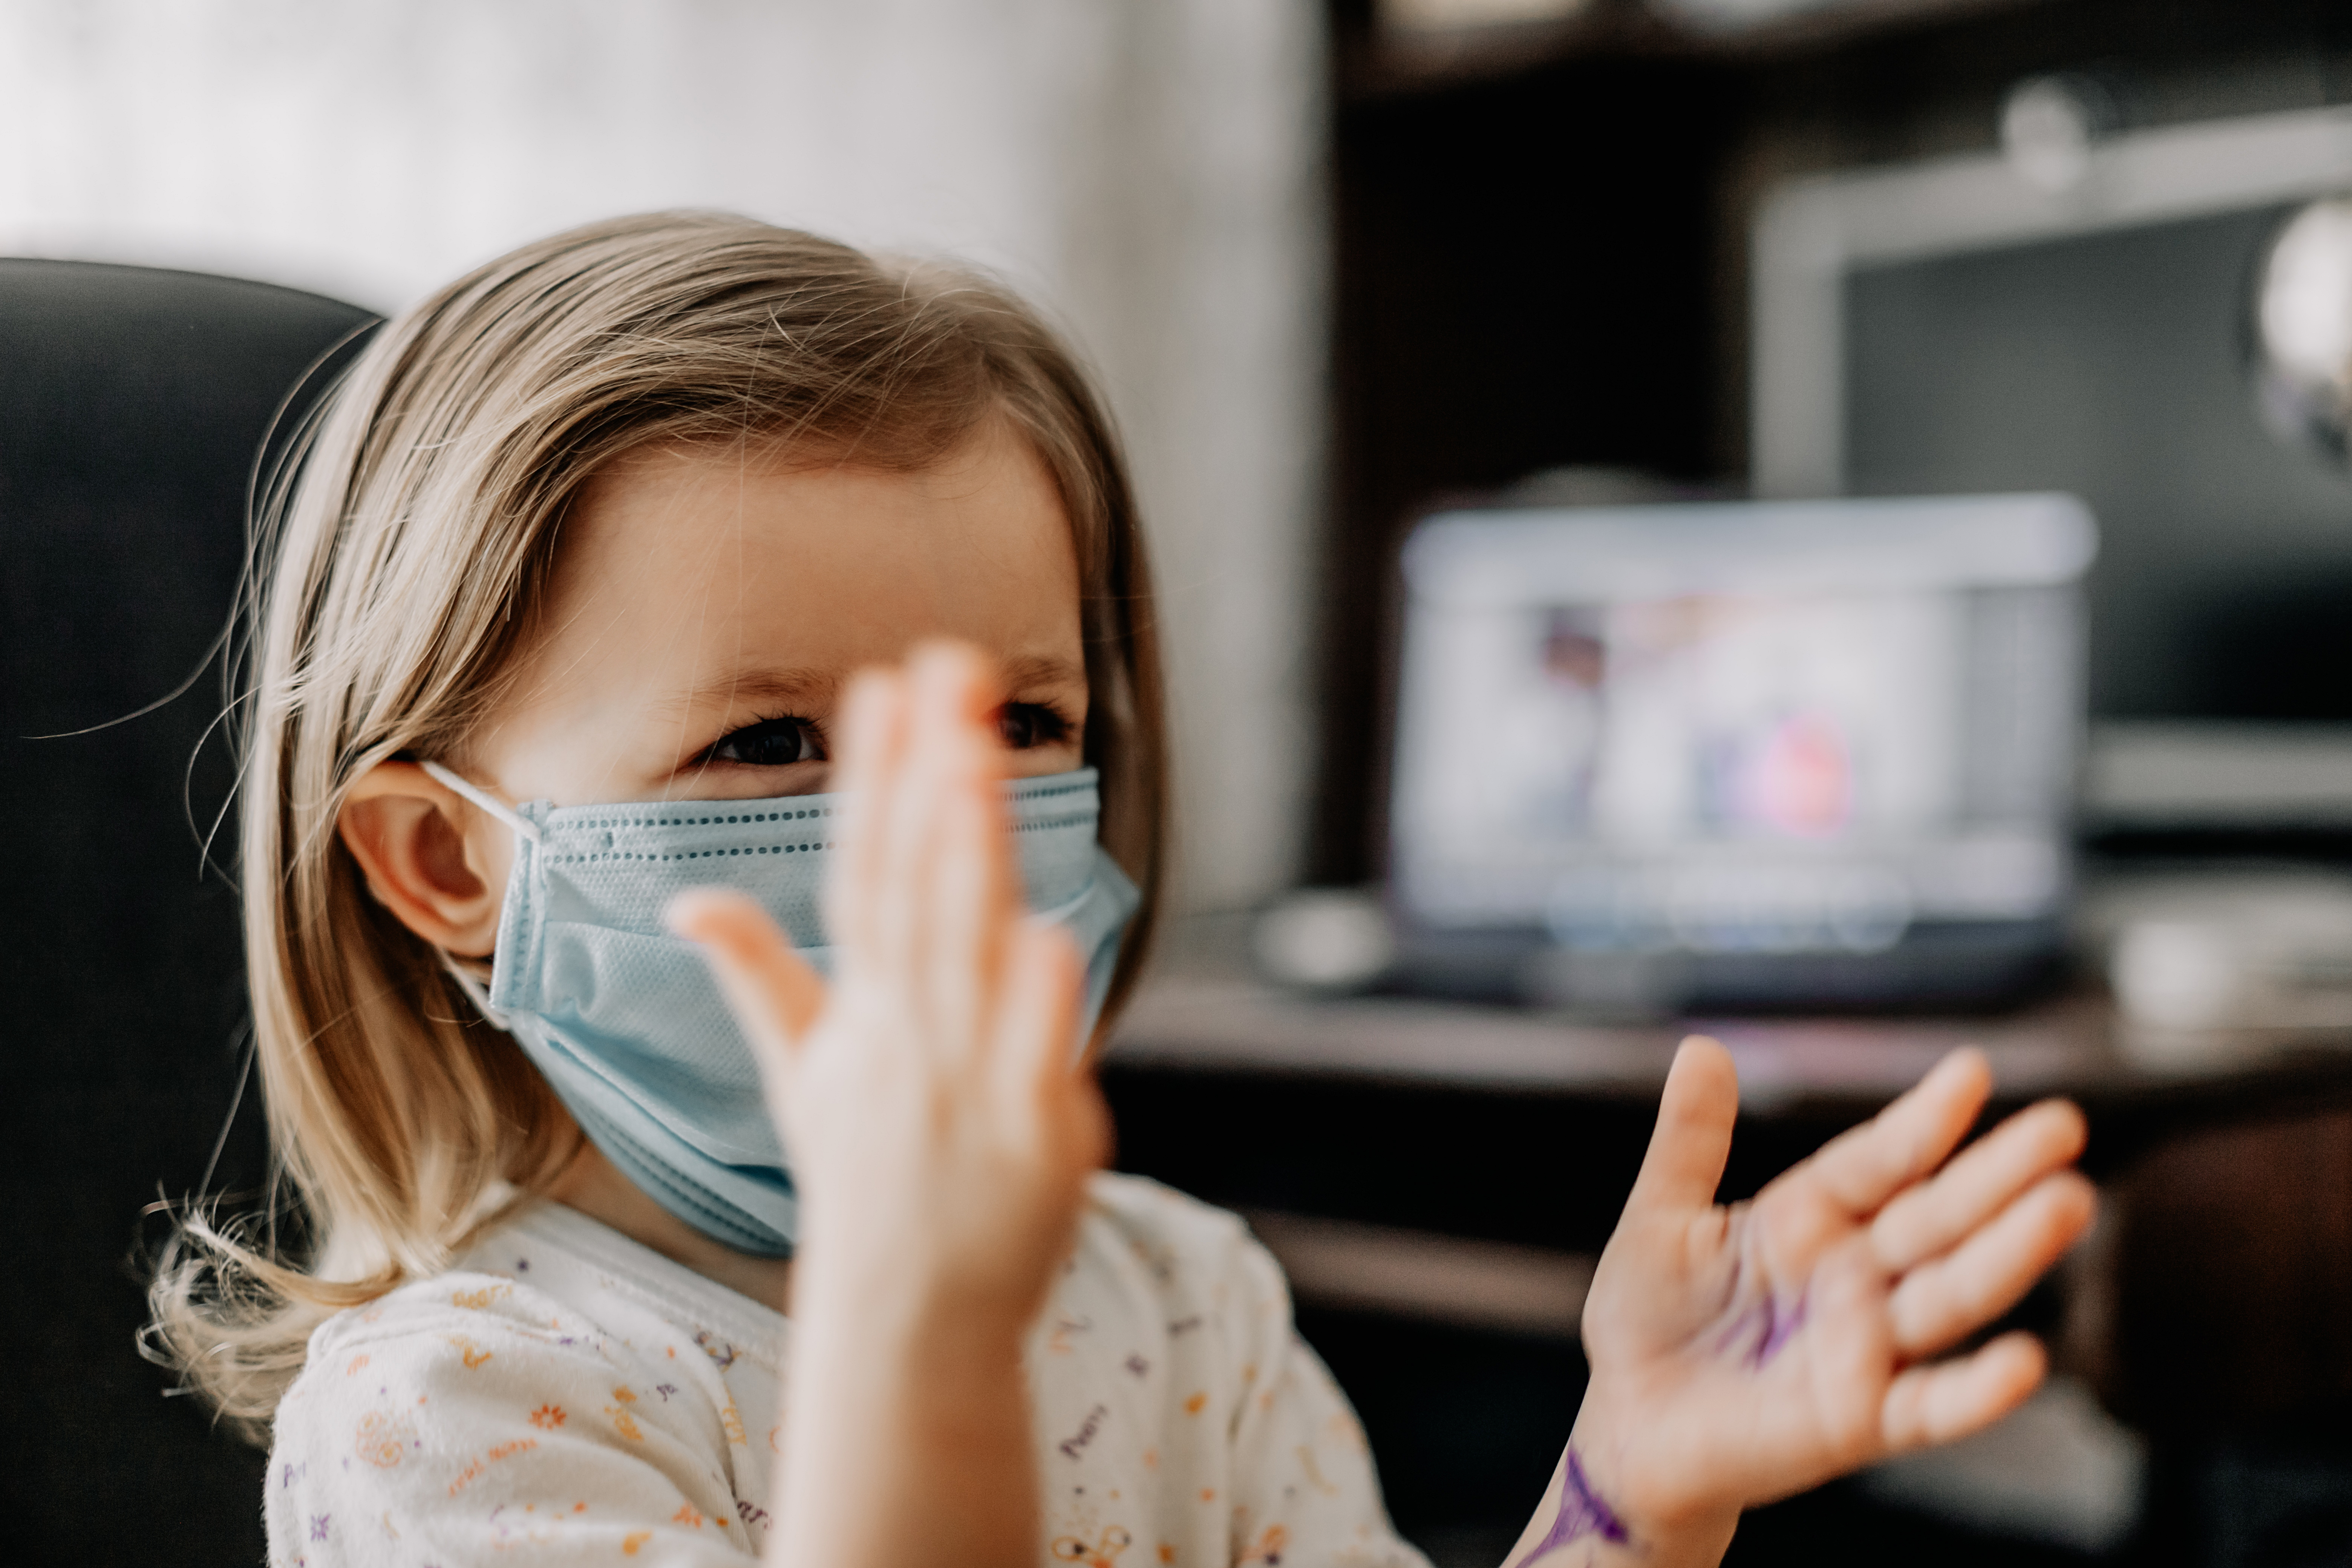 a young child wearing a protective medical mask is home treated at home